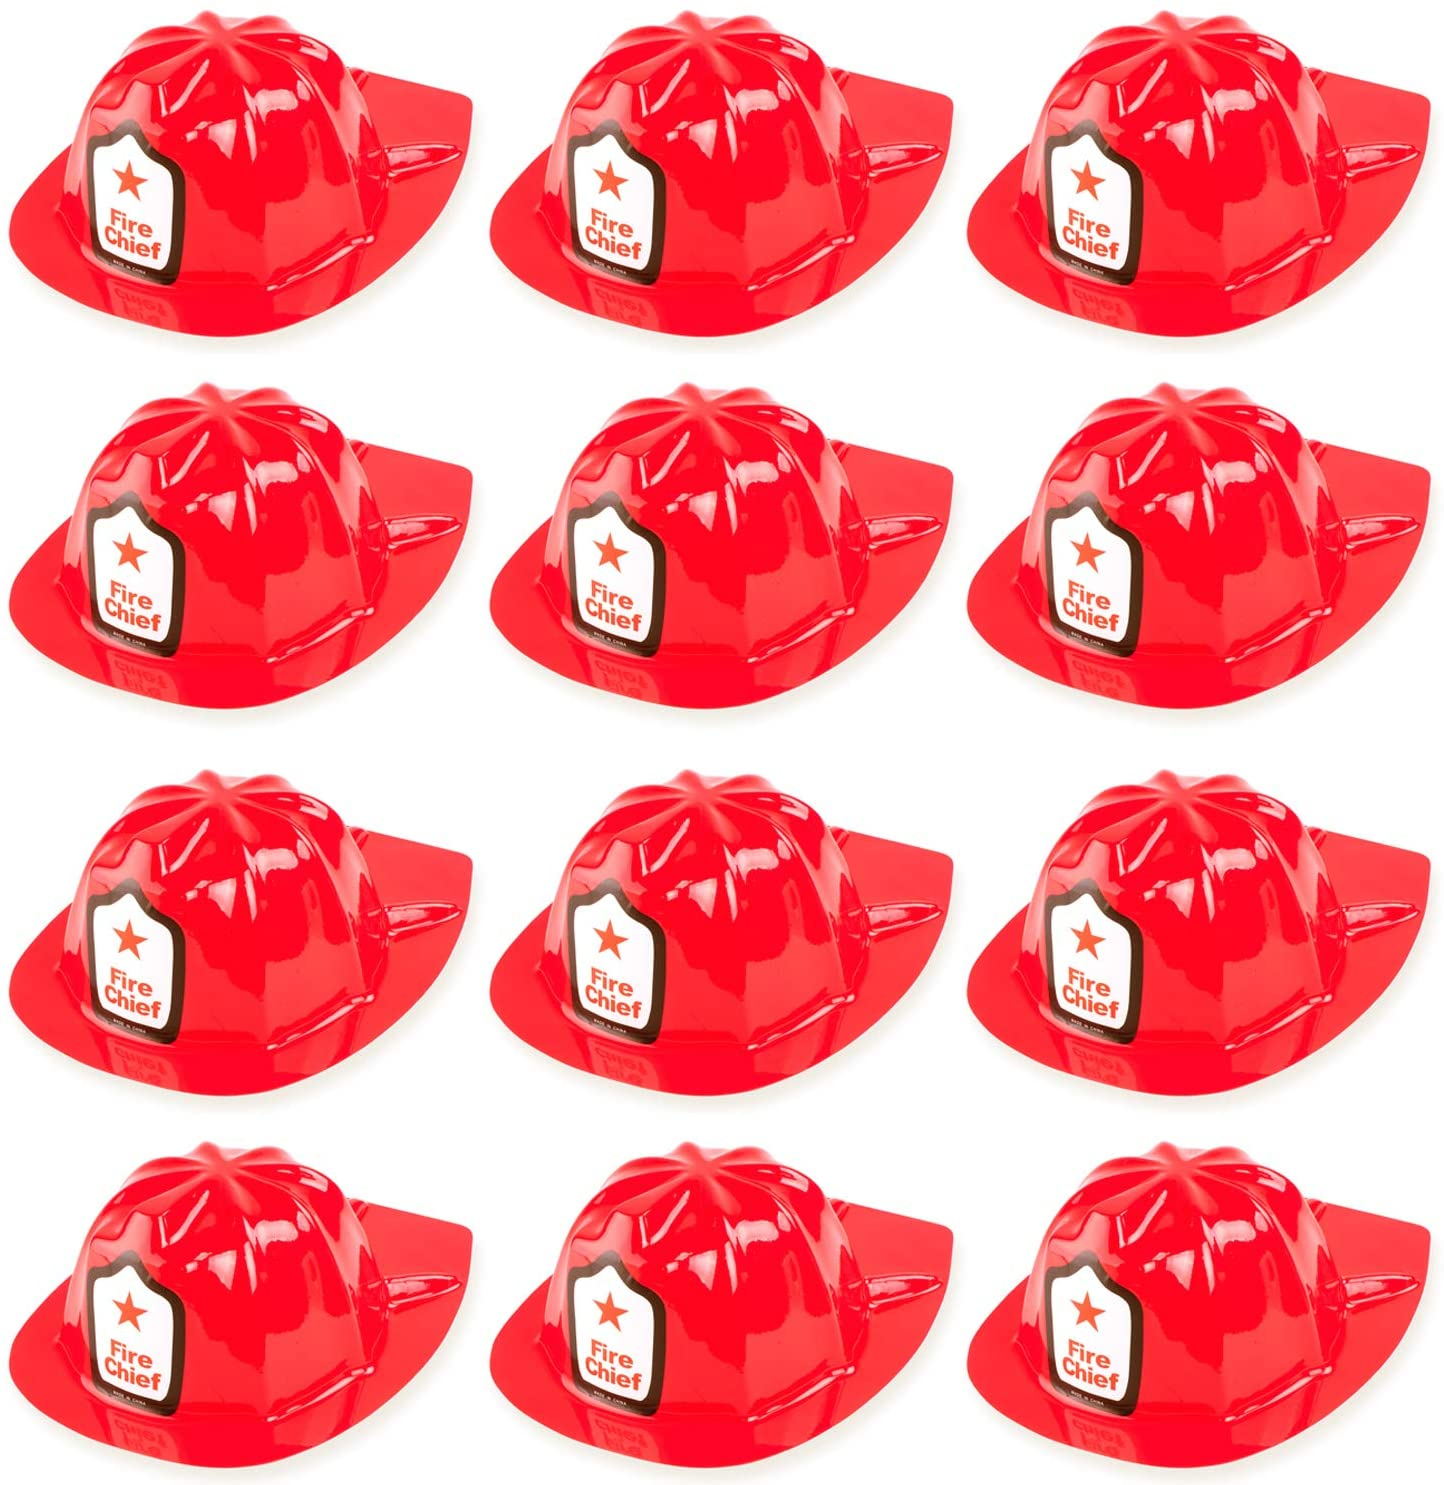 12 Pack Firefighter Children's Helmet Party Supplies for Kid's Costume Accessory